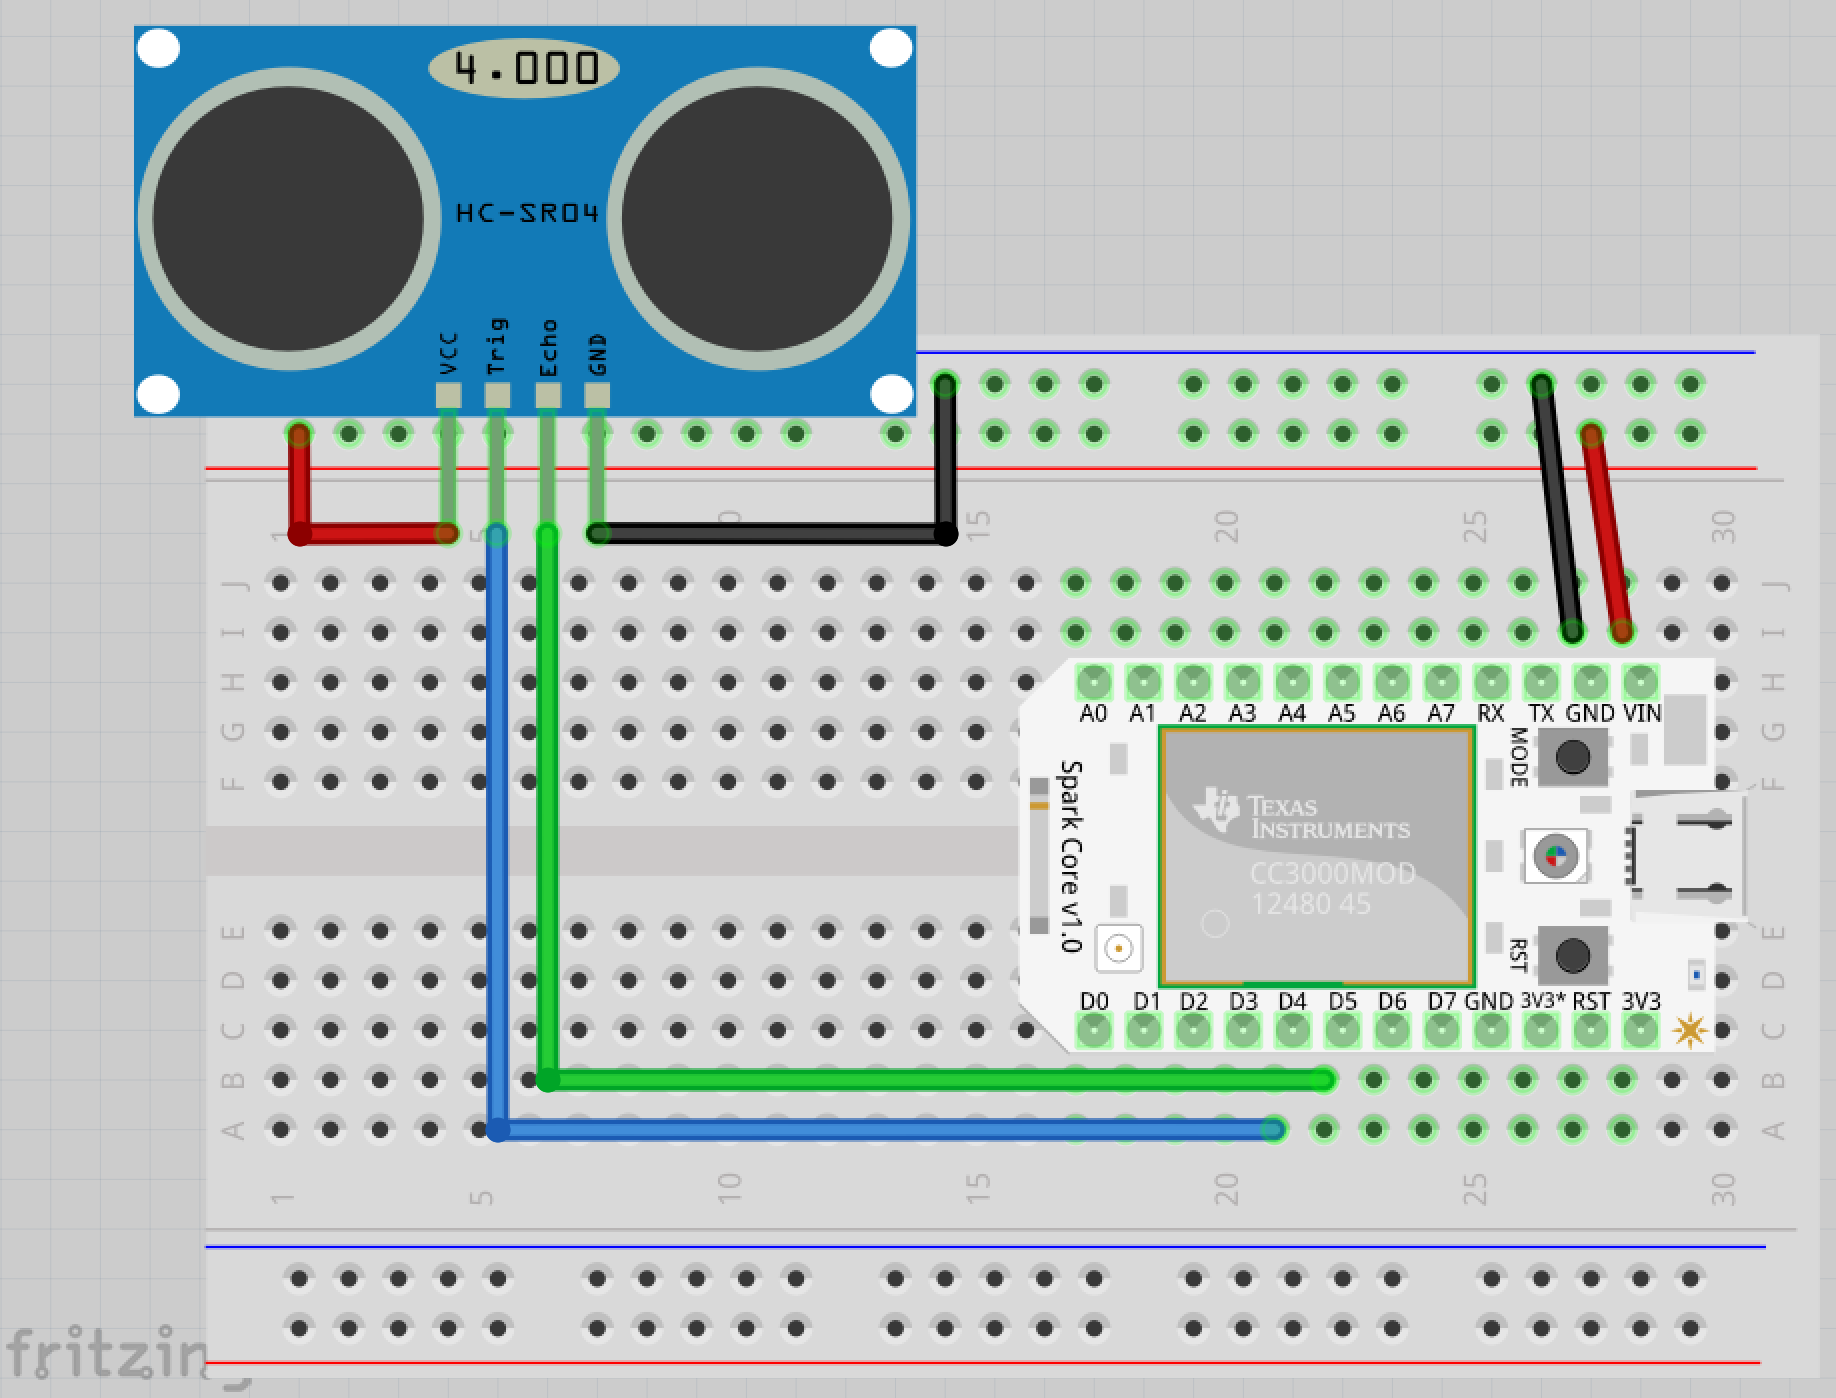 Wiring proximity sensor with Spark Core